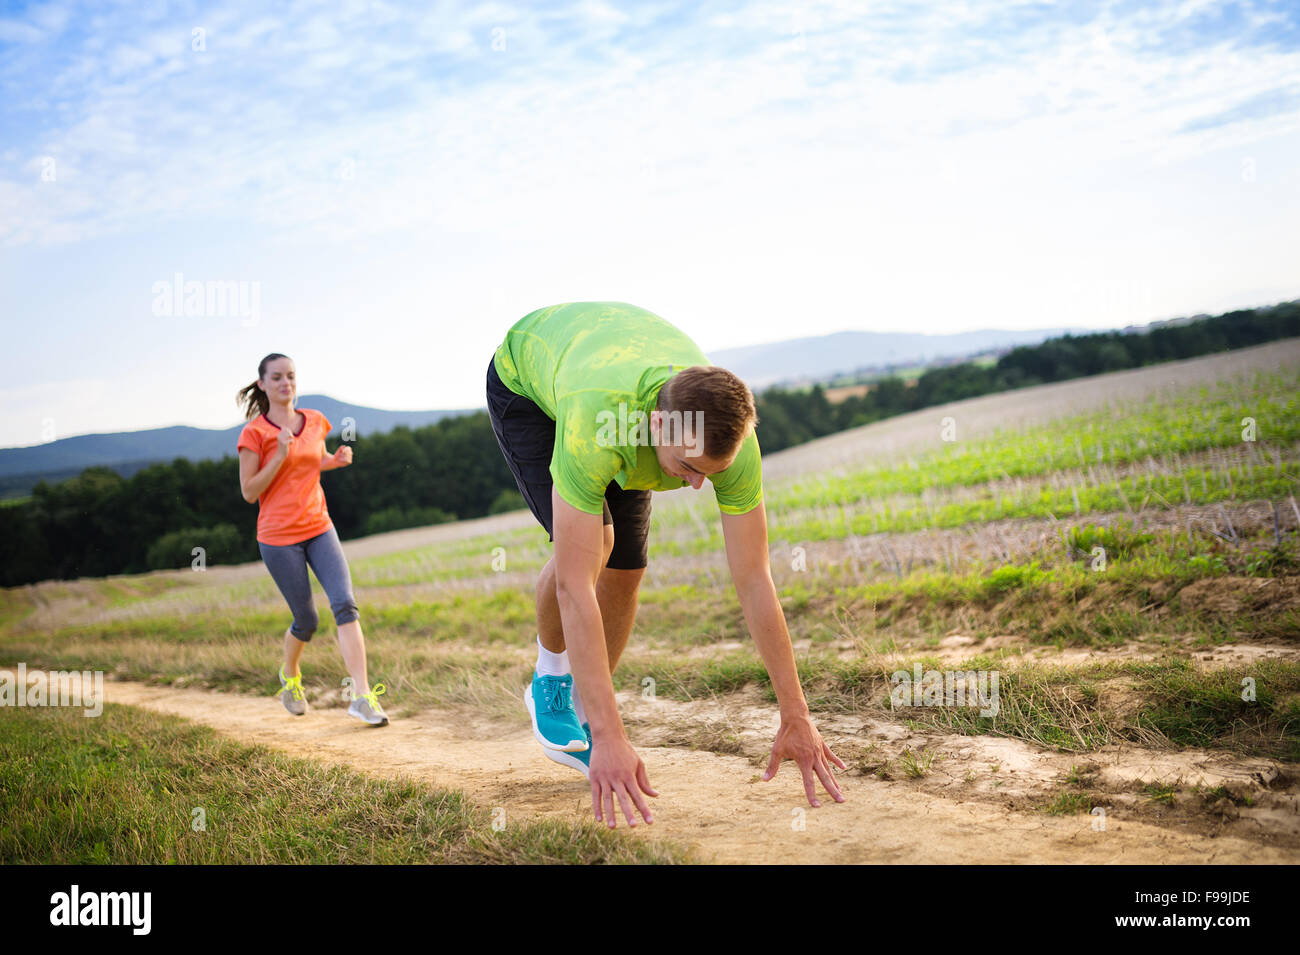 Male runner tripping over and falling down on the cross country trail - Stock Image